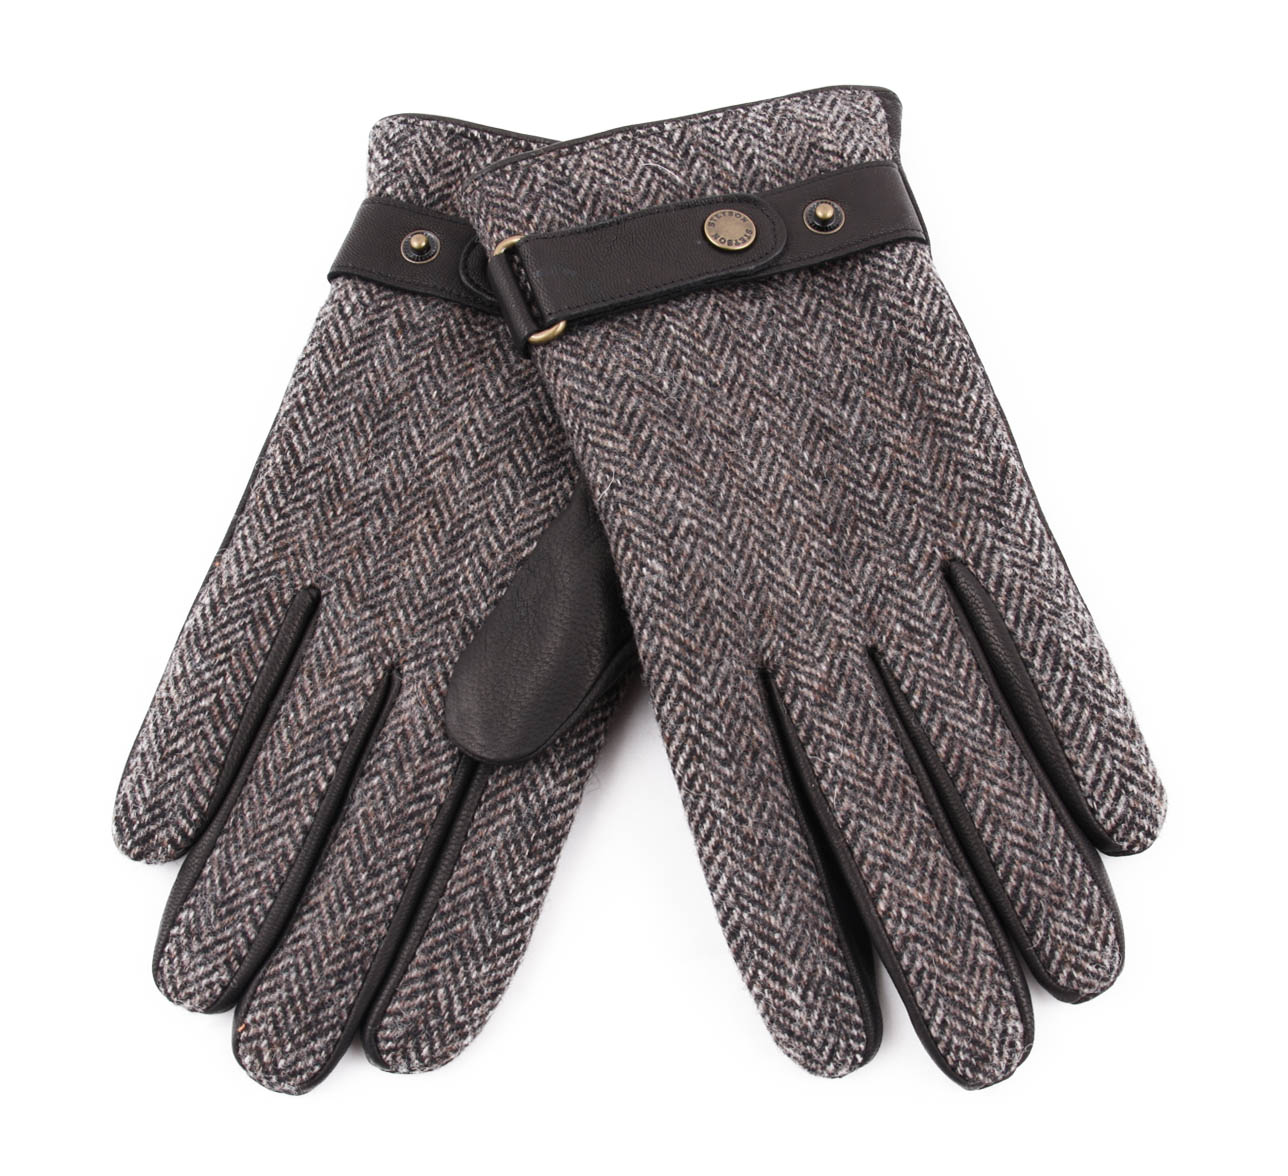 Foulard, Noeud Papillon Gloves Goat Nappa Gloves Goat Nappa